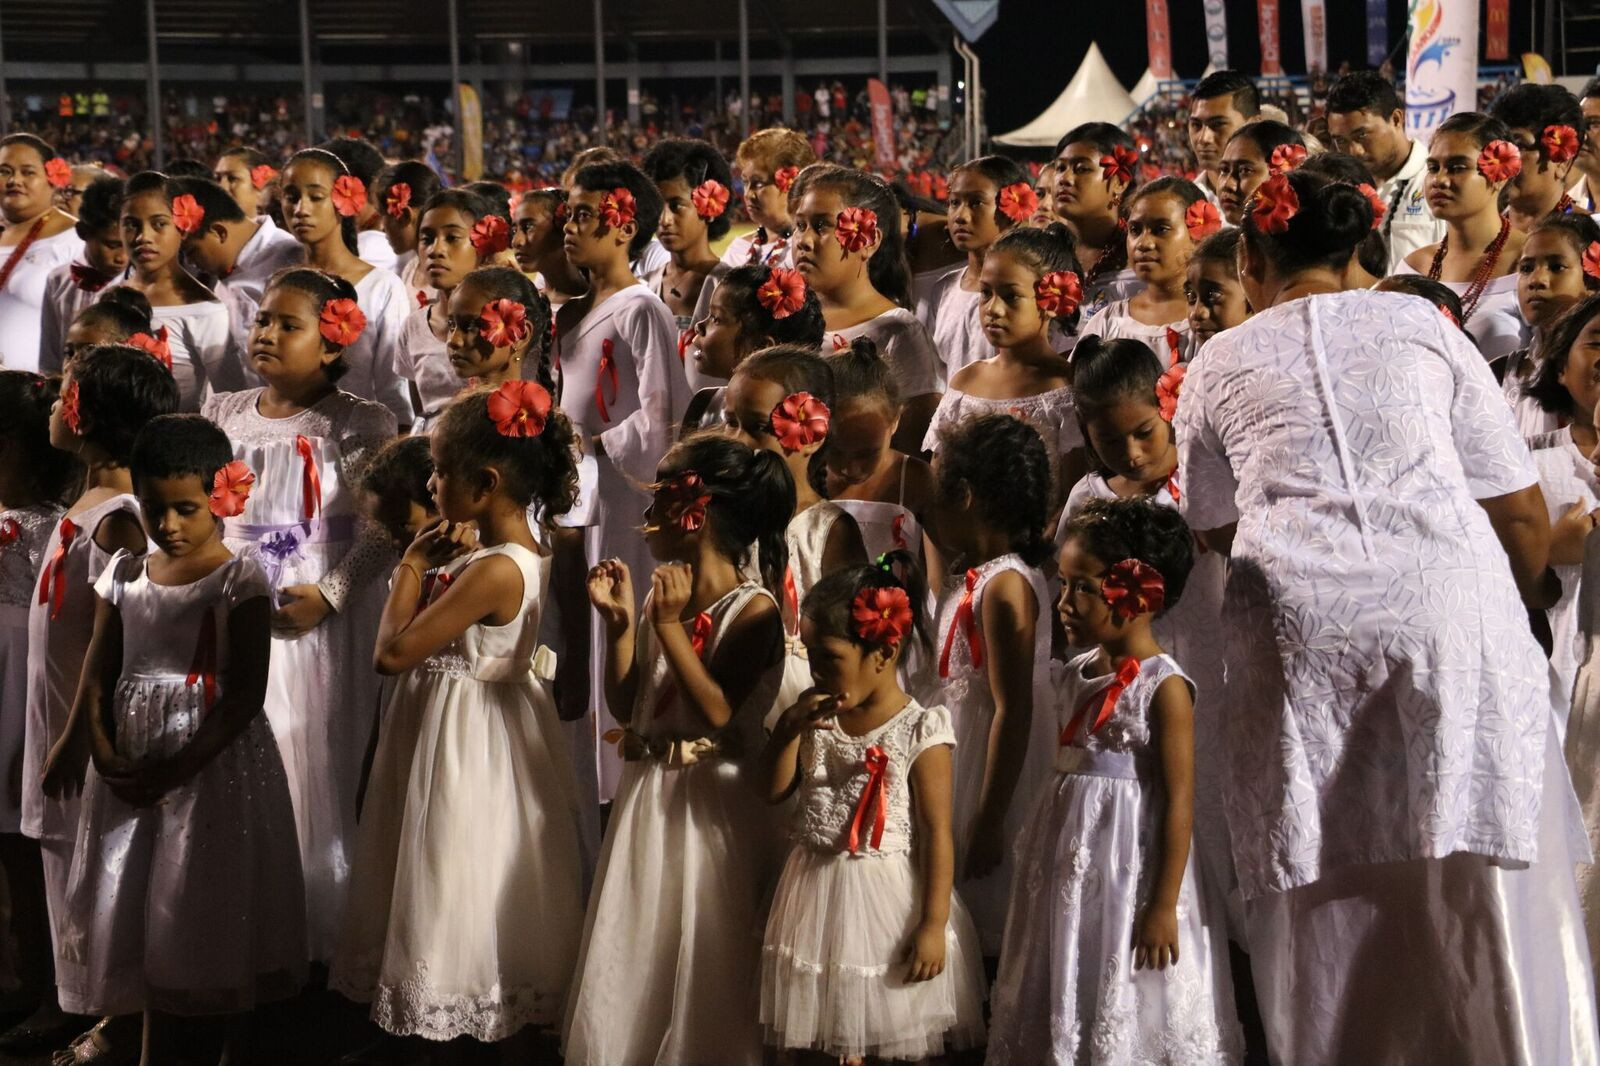 The Closing Ceremony featured plenty of pageantry including thousands of students and schoolchildren performing ©Games News Service